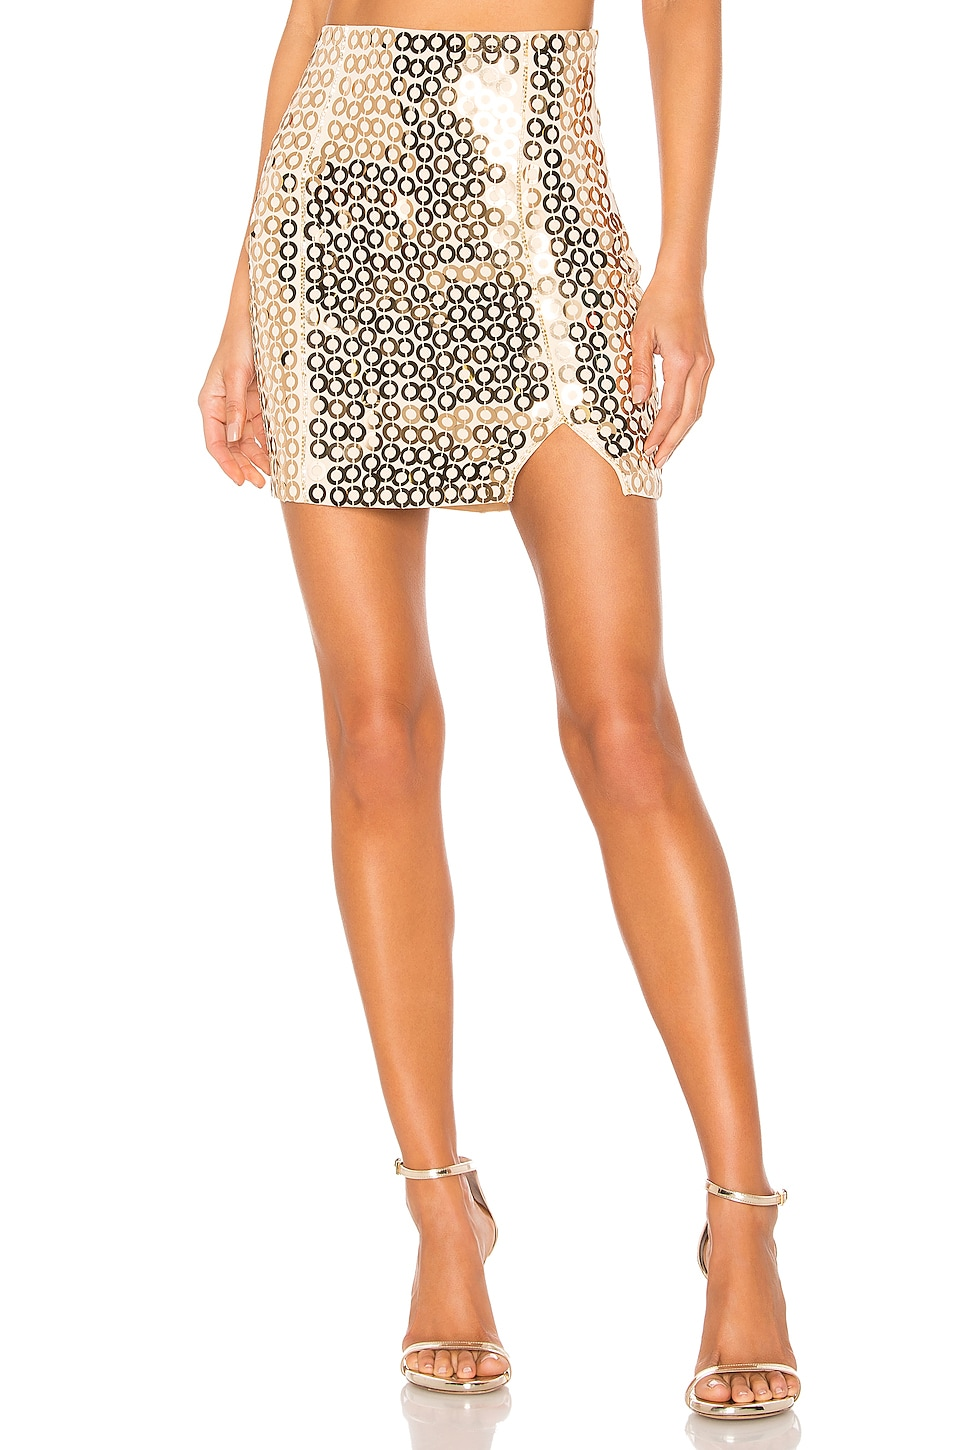 h:ours Galenia High Waisted Mini in Gold